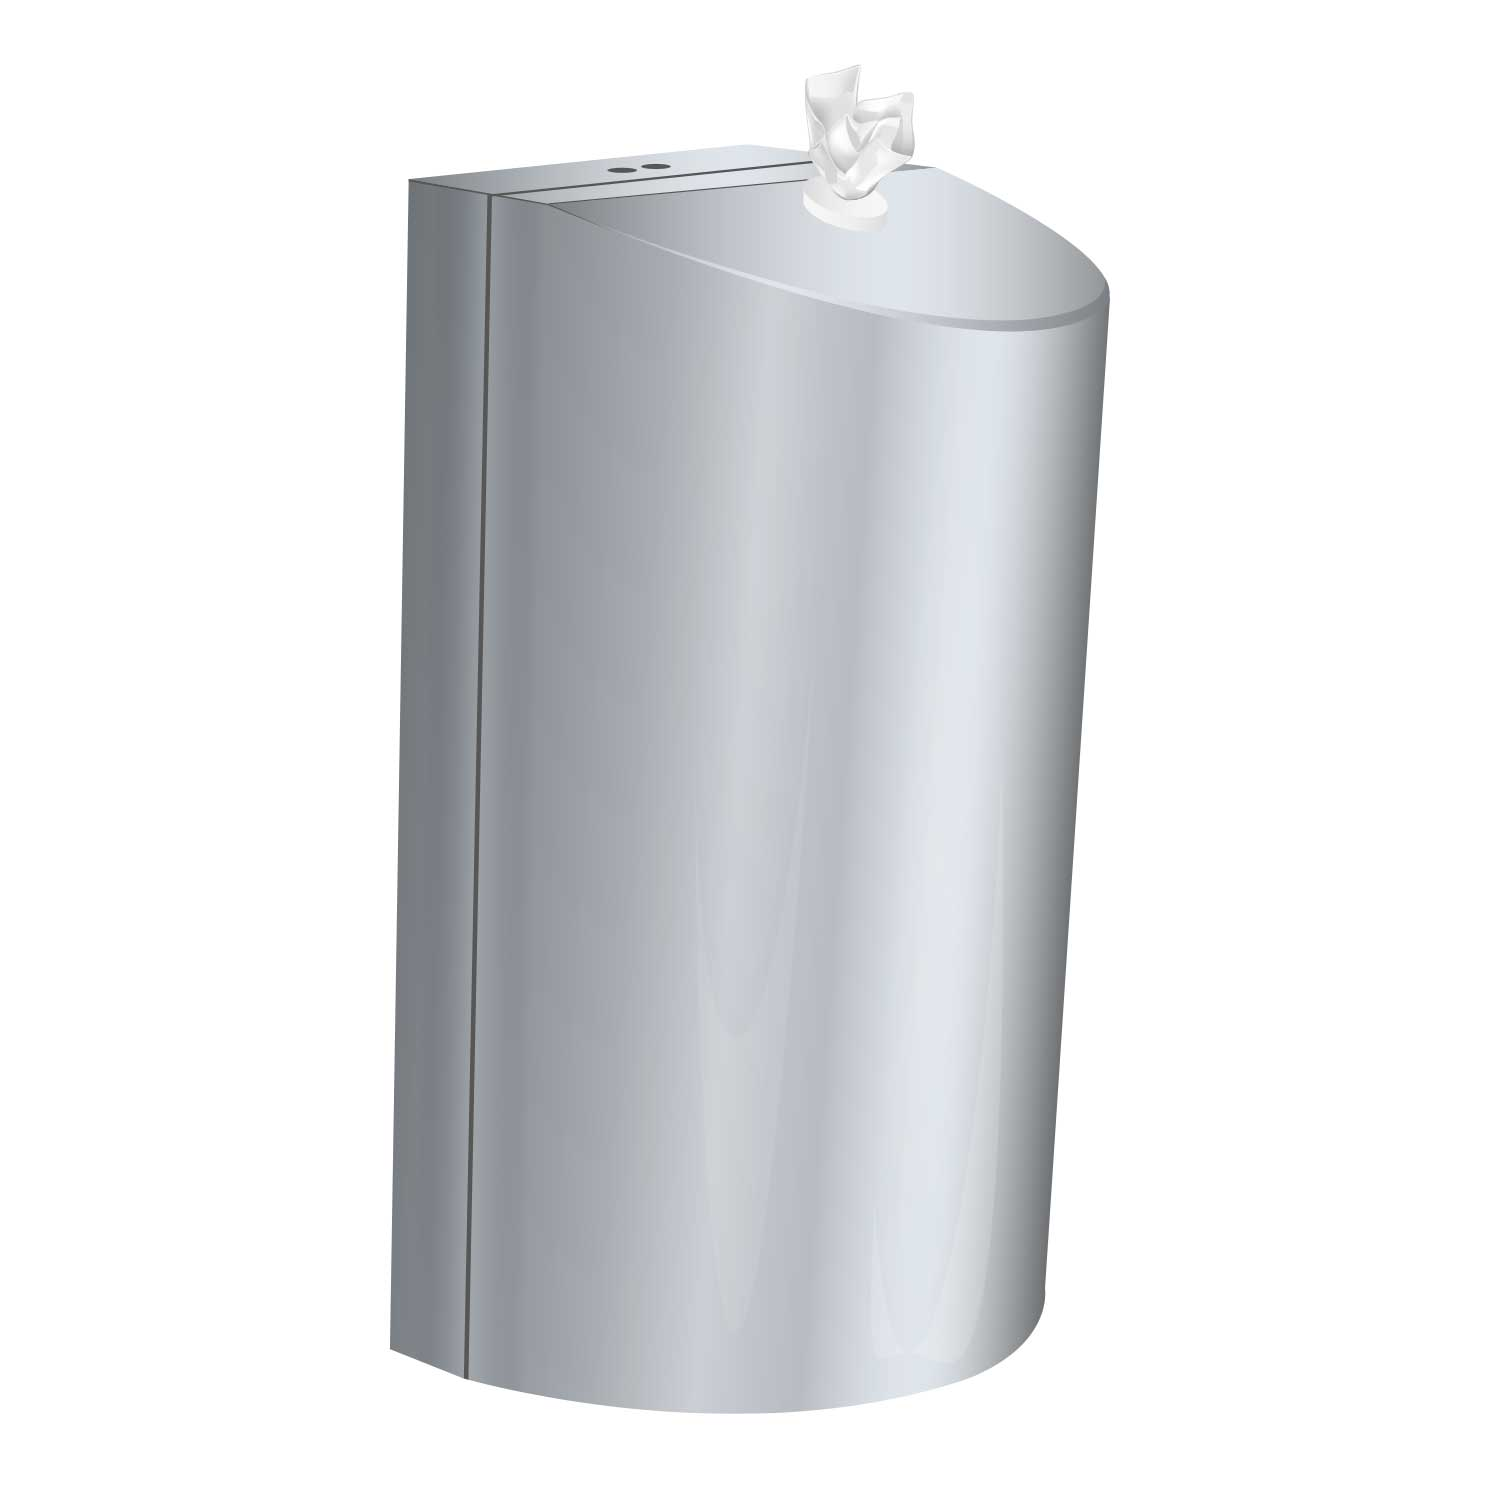 Brushed Stainless Steel wall mounted dispenser / small - Paint finished in matt BLACK